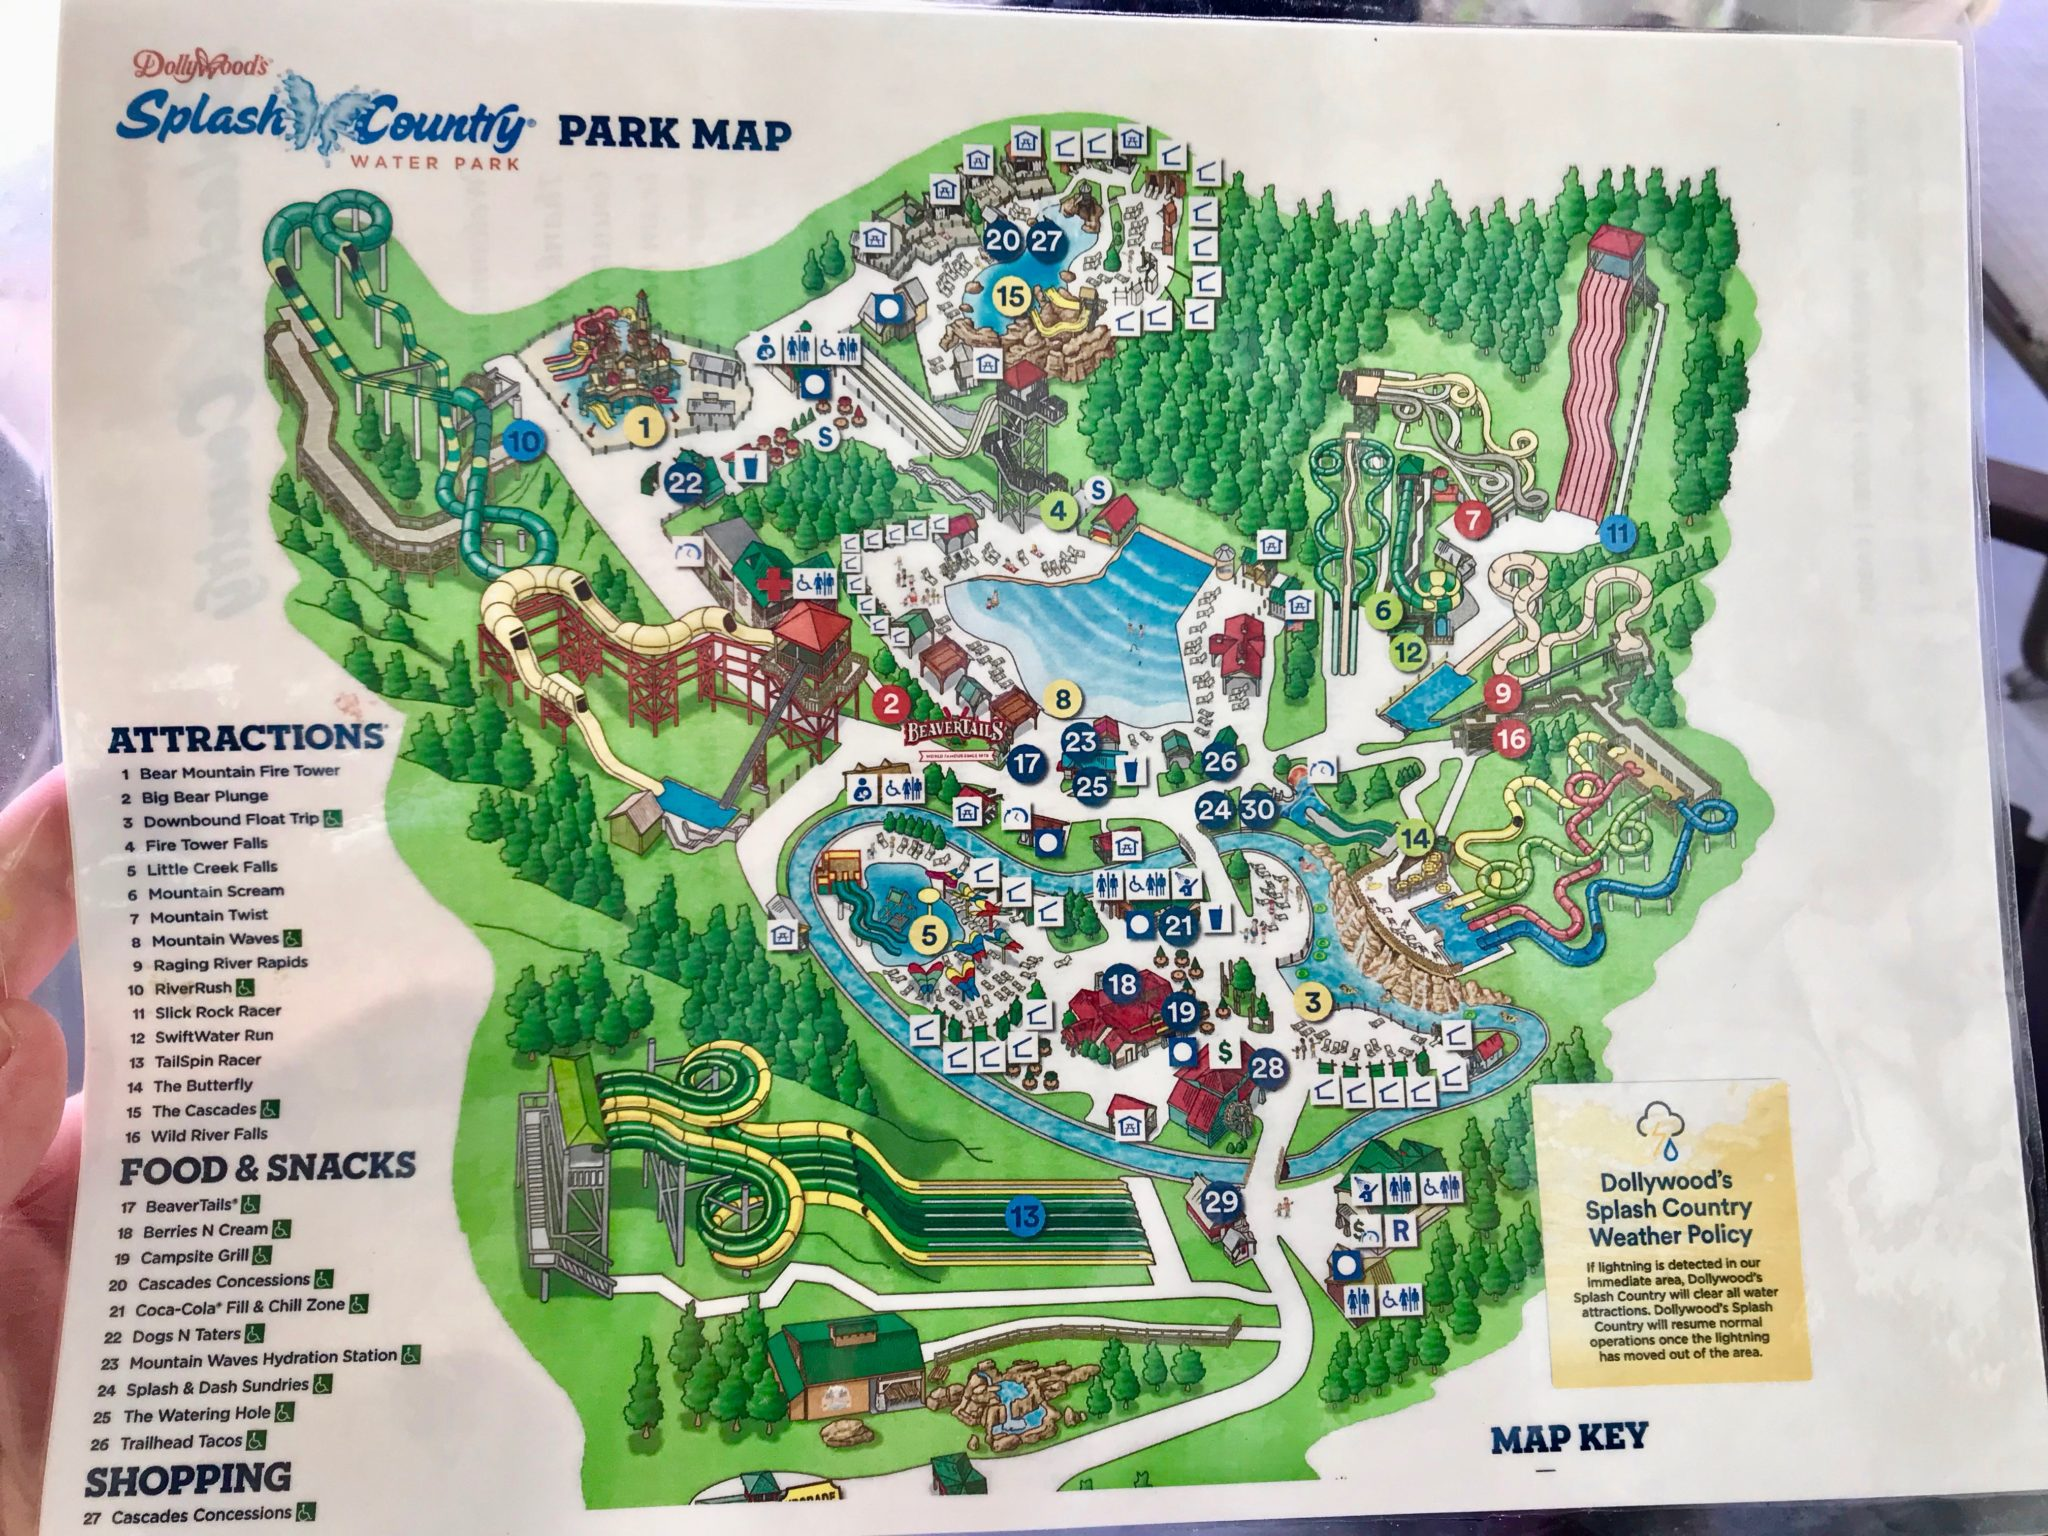 A Foodie's Guide To Dollywood Family Amut Park - Slice of Jess on